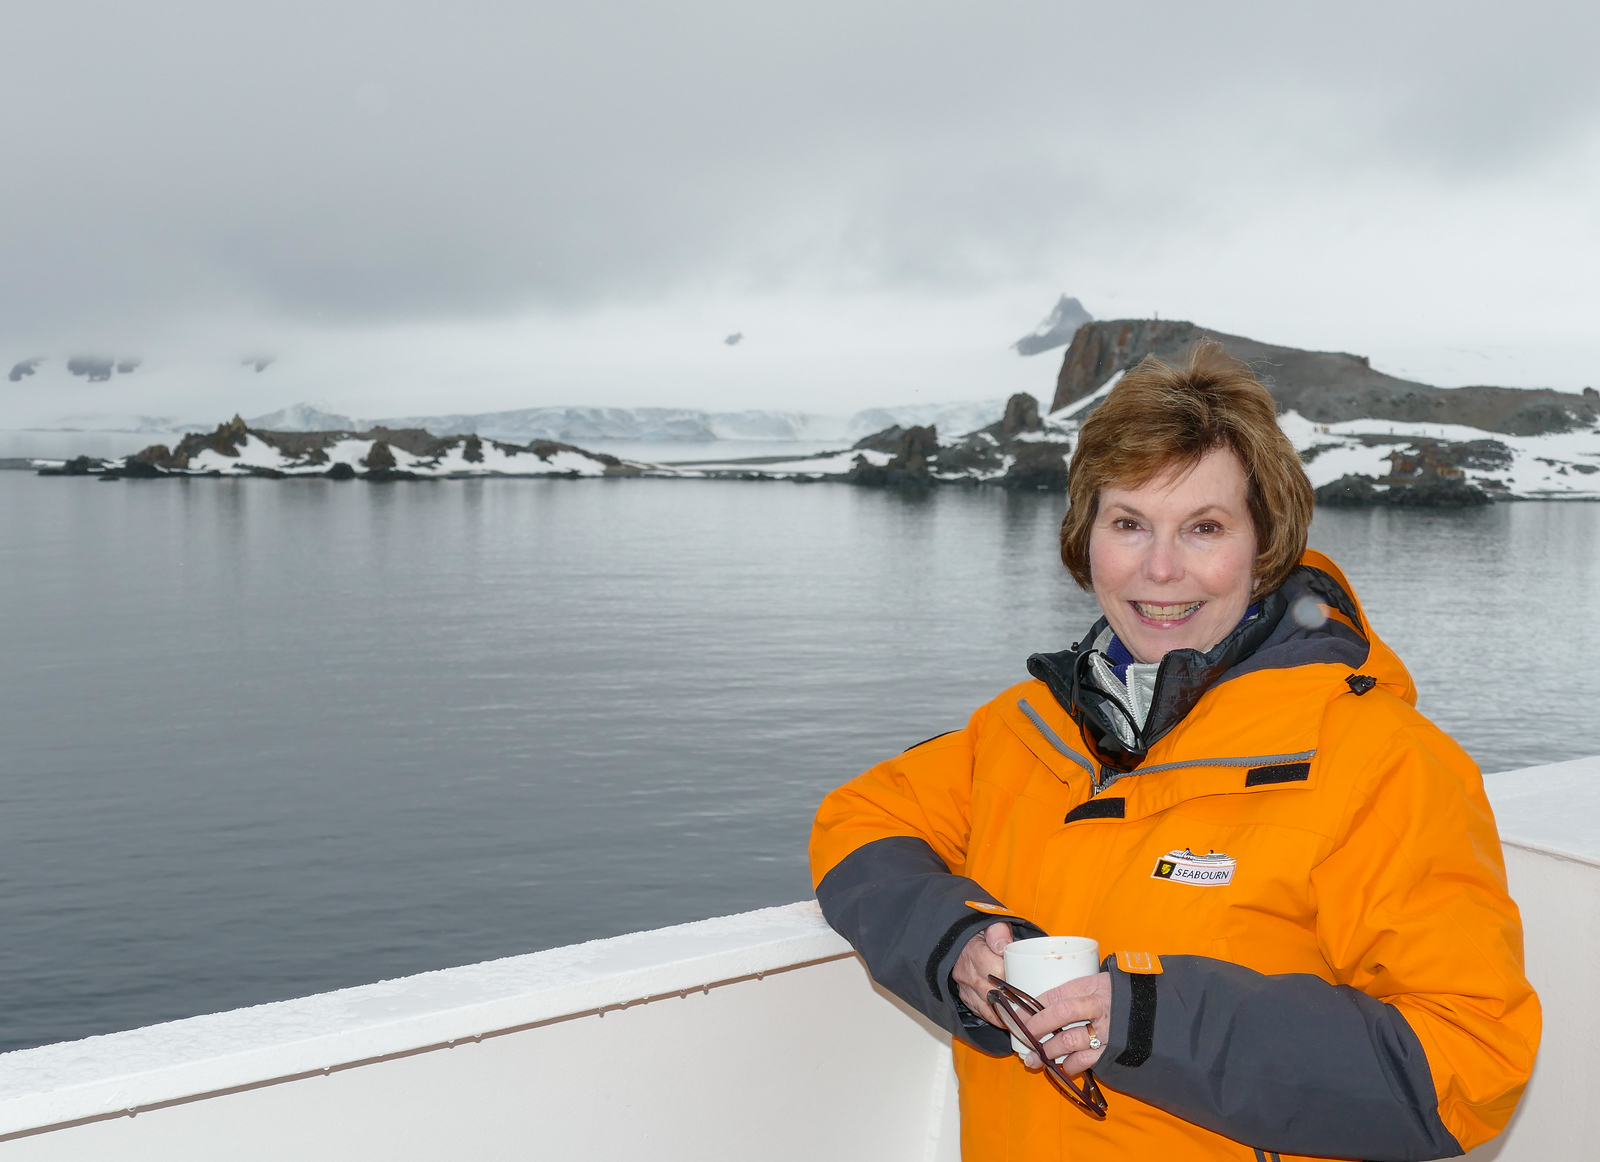 Donna Hull sips a cup of hot chocolate before going on a Seabourn excursion to Half Moon Island in Antarctica.